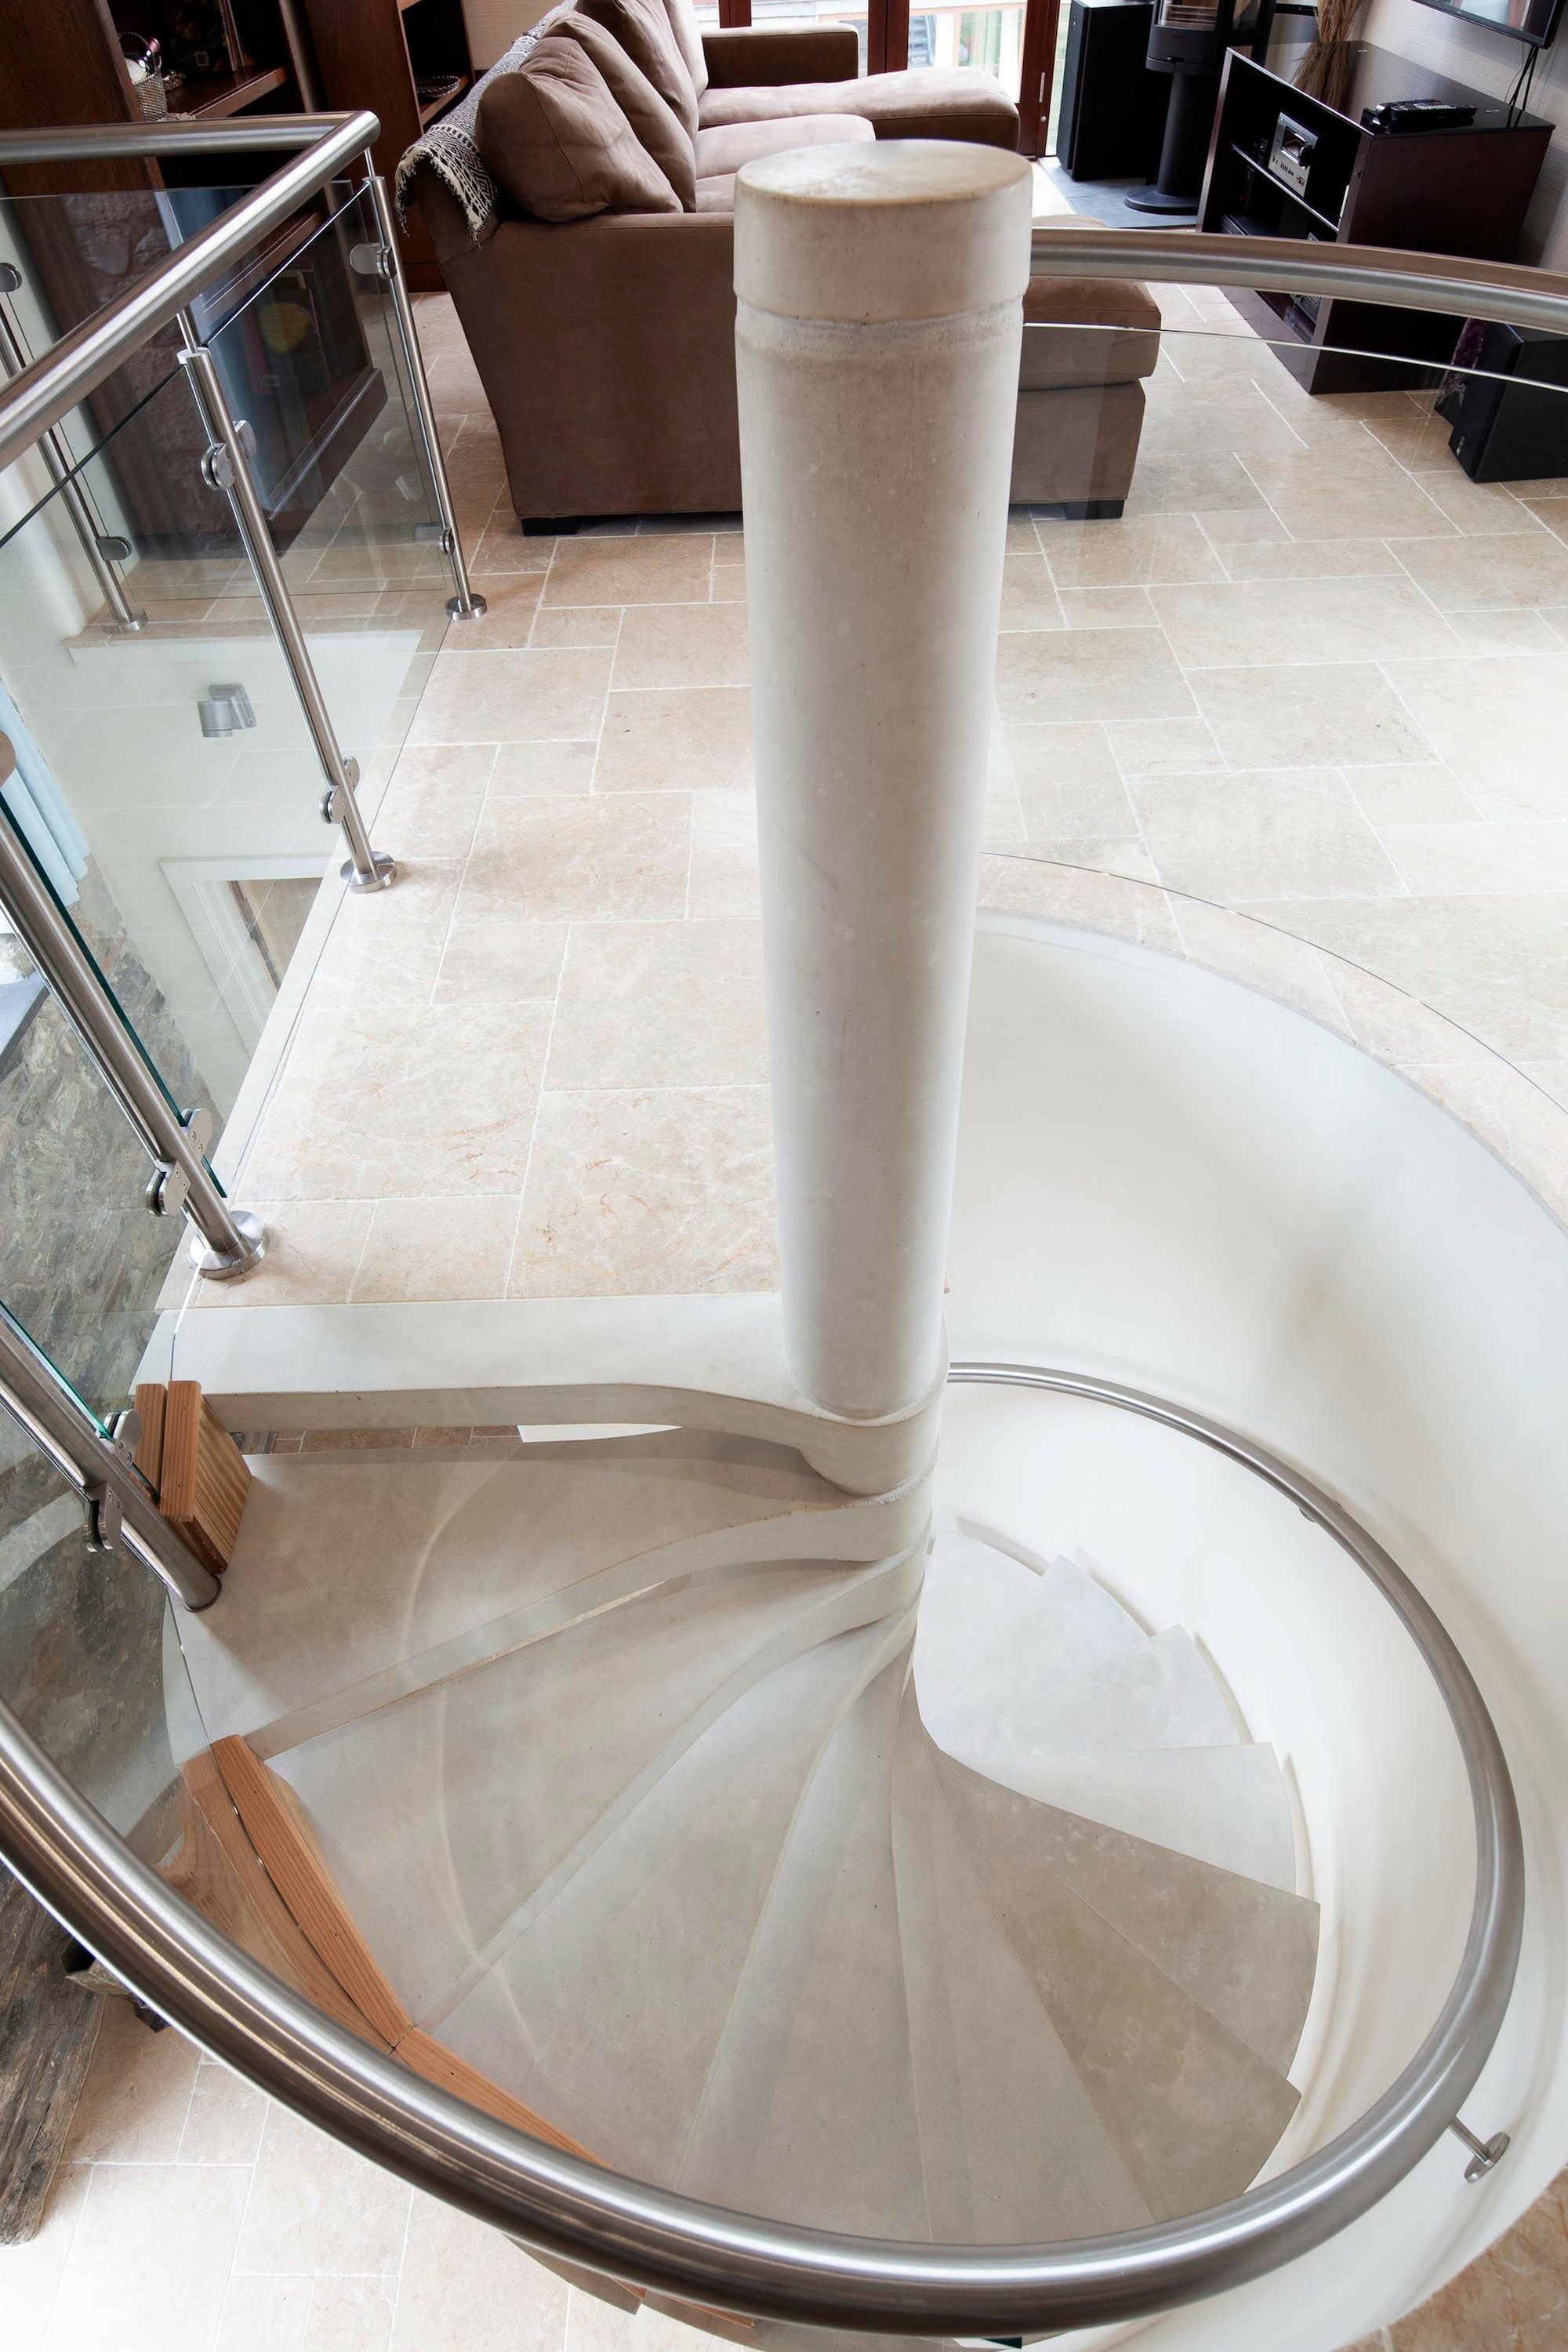 Handrail and balustrade on spiral staircase